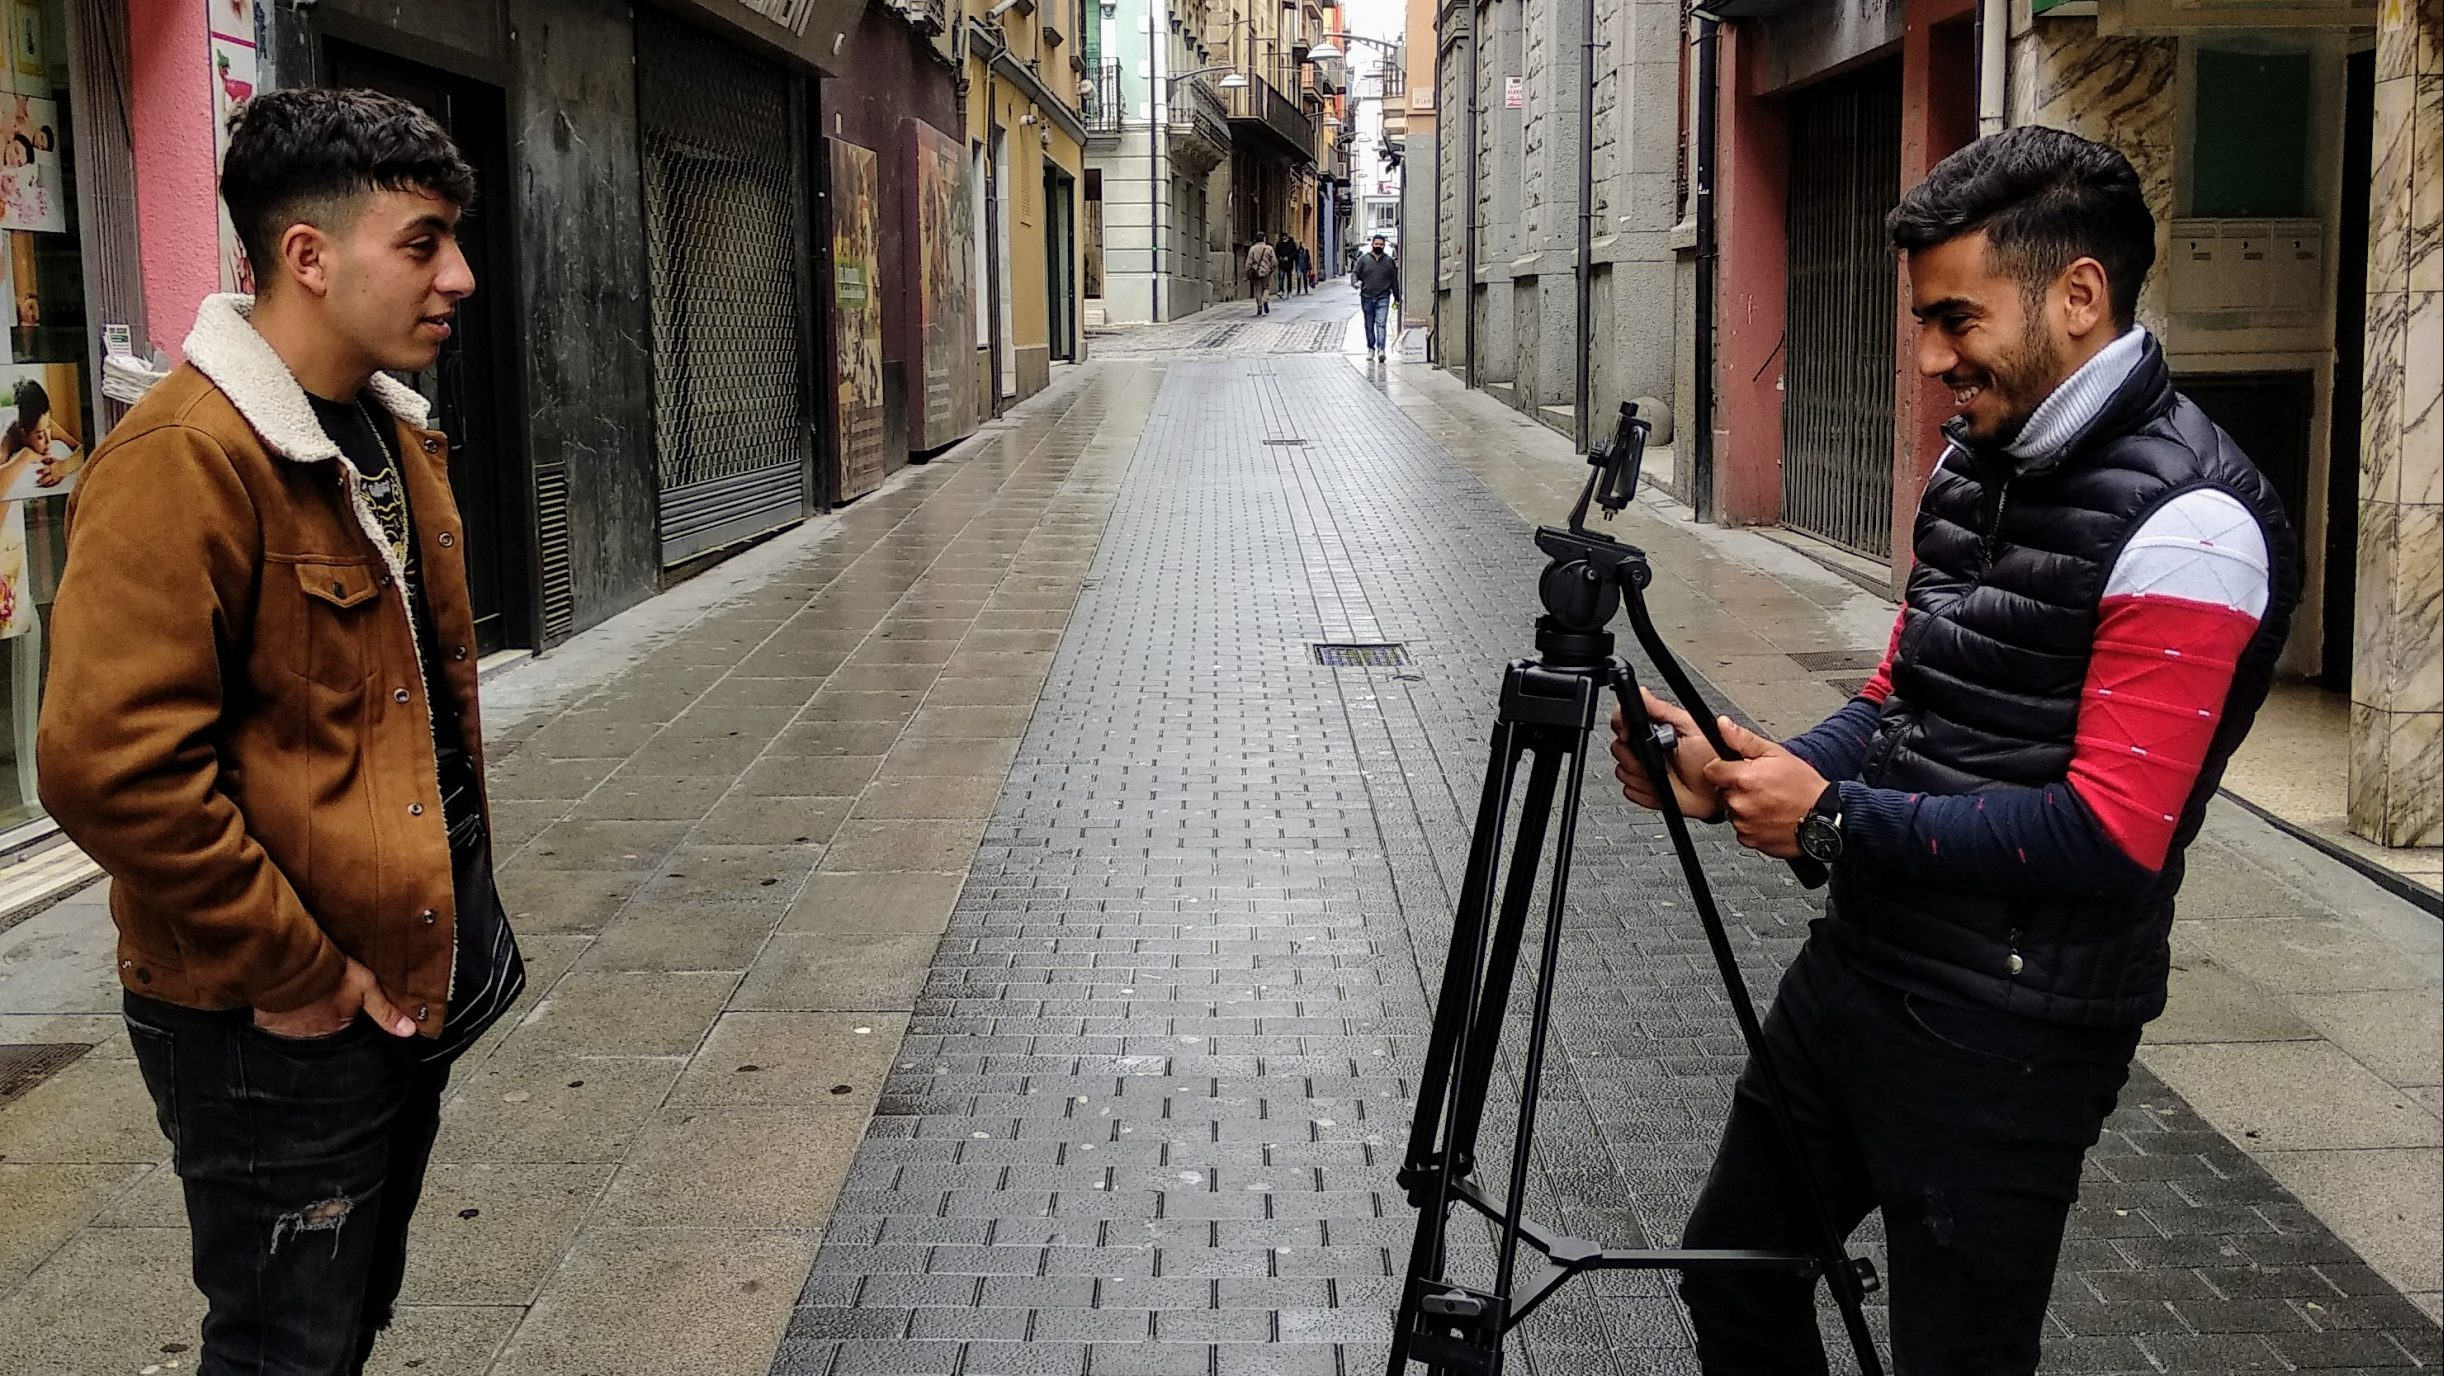 The image shows two young men in the streets of Olot, Spain. They are equipped with filing gear. One man is filming the other.